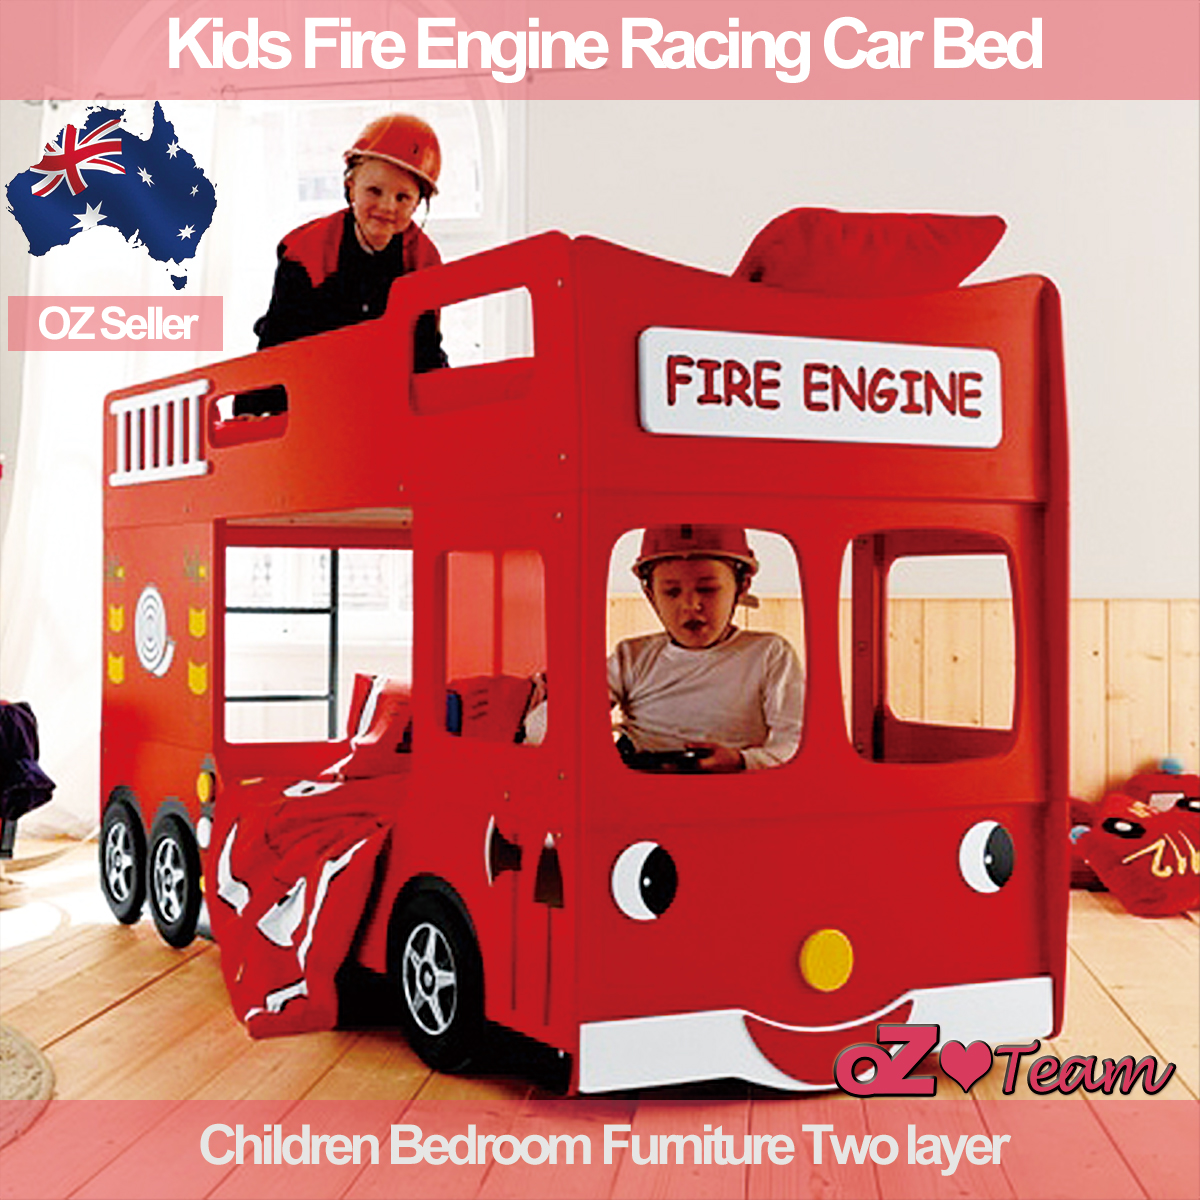 kids bunk beds fire engine racing car bed children bedroom furniture two layer ebay